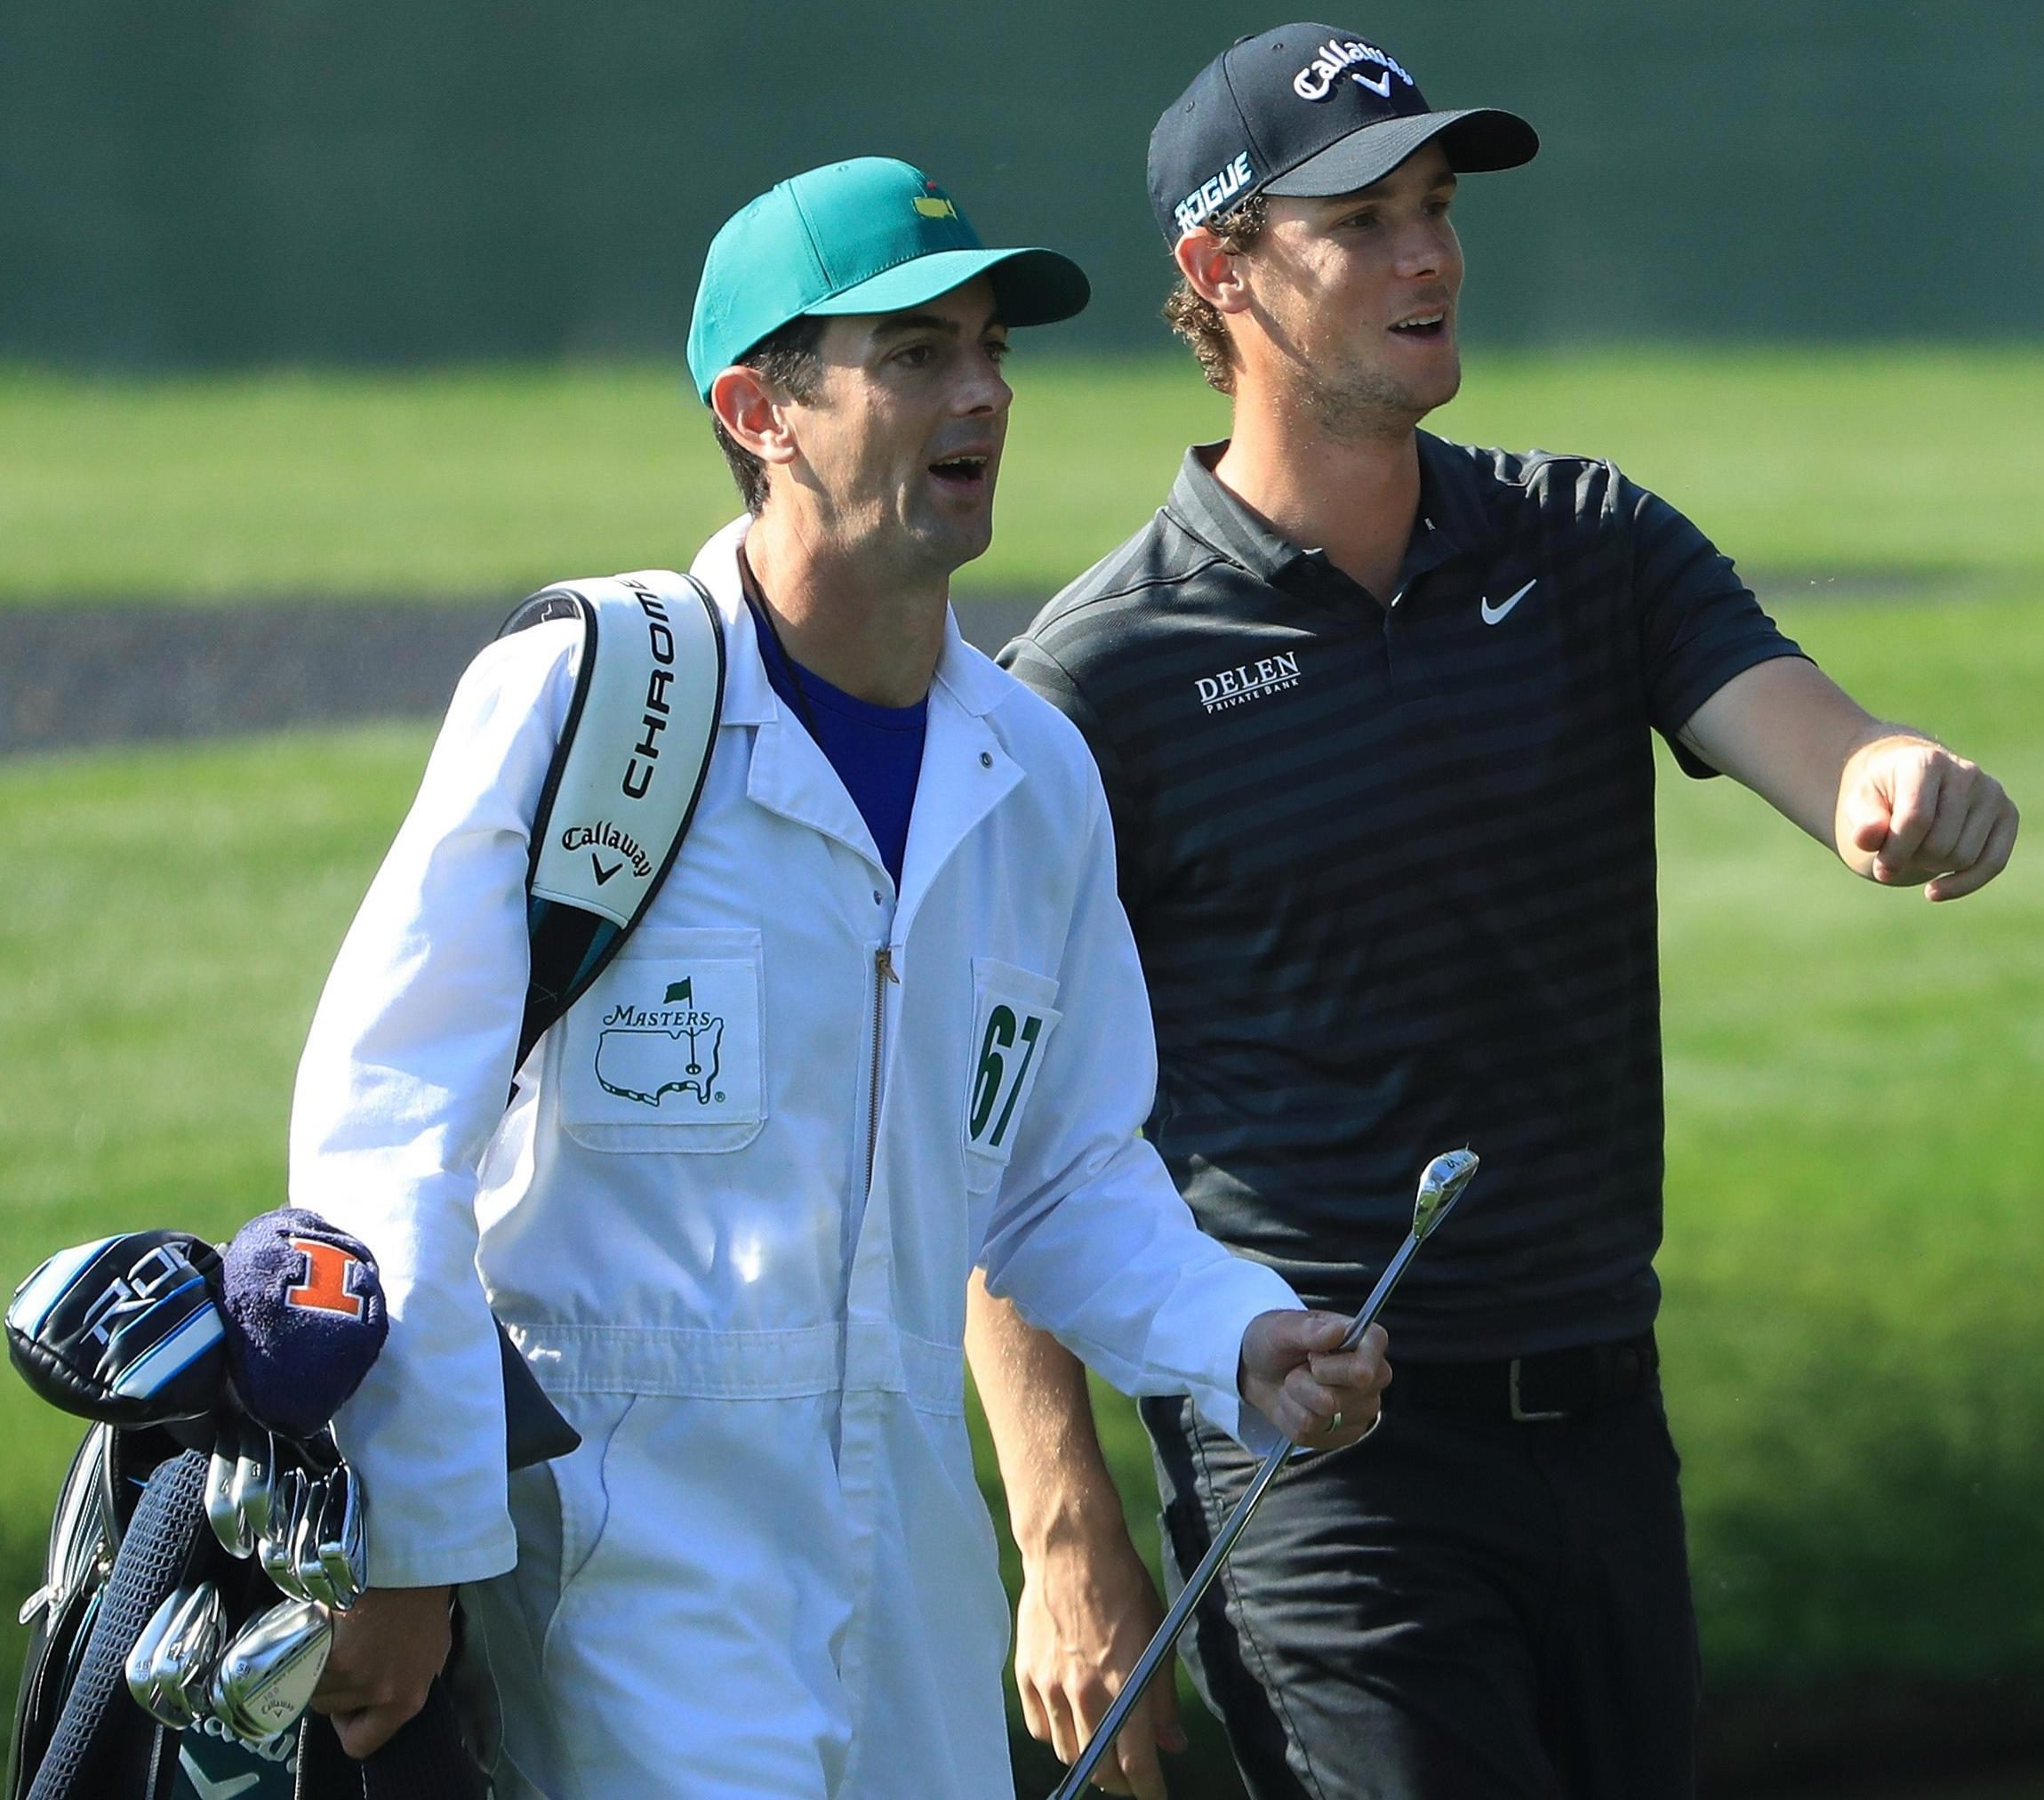 Pieters weighs things up with caddie Adam Morrow during a practice round